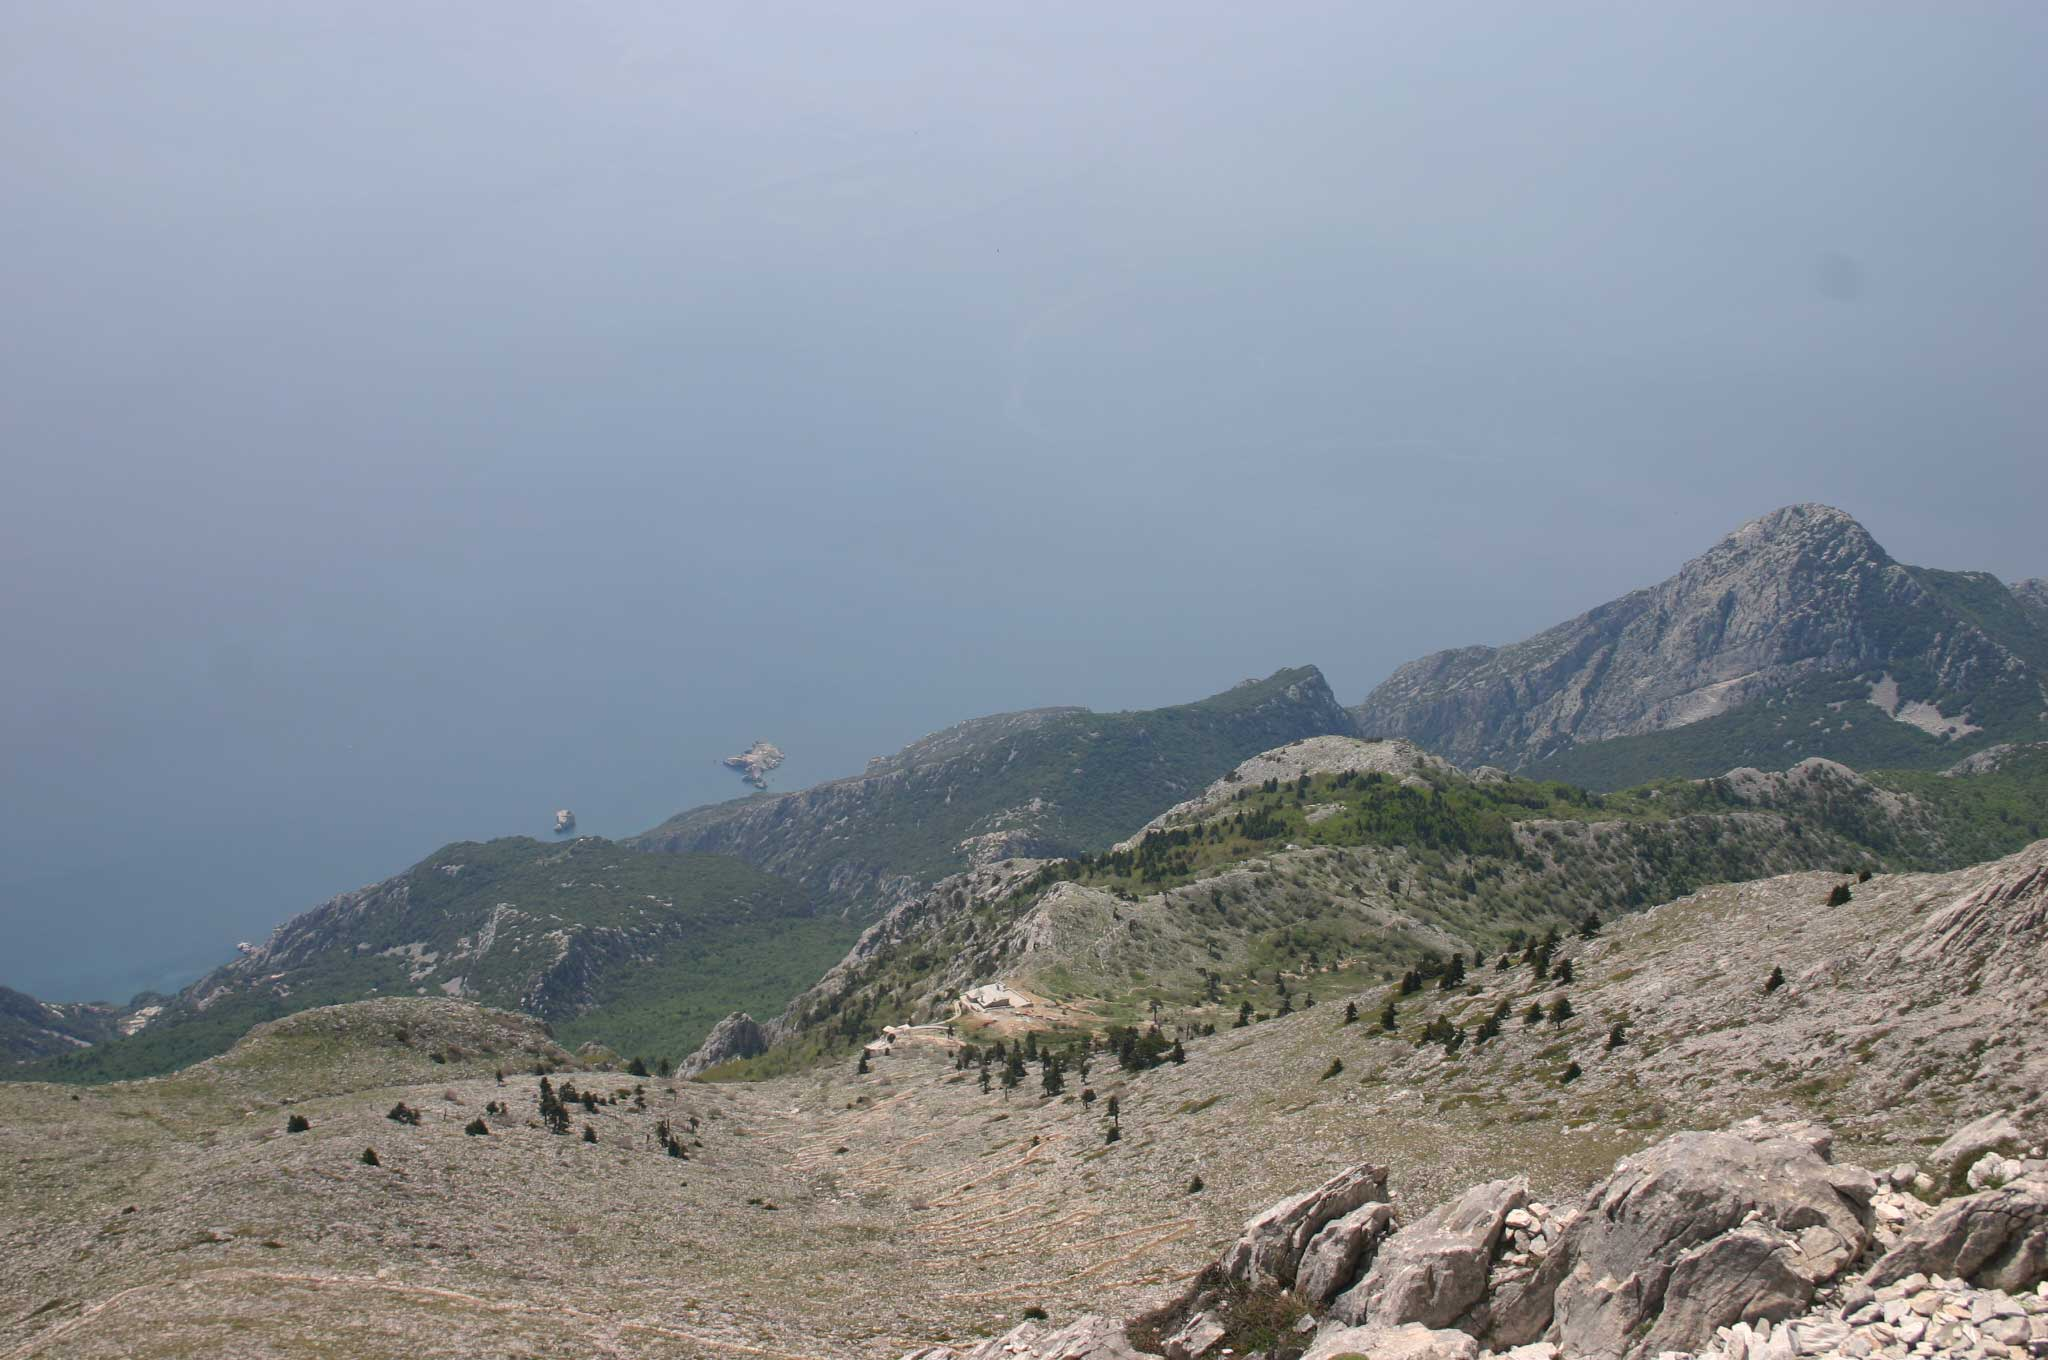 Mount Athos: Mt Athos - Way Above Panaghias - © William Mackesy